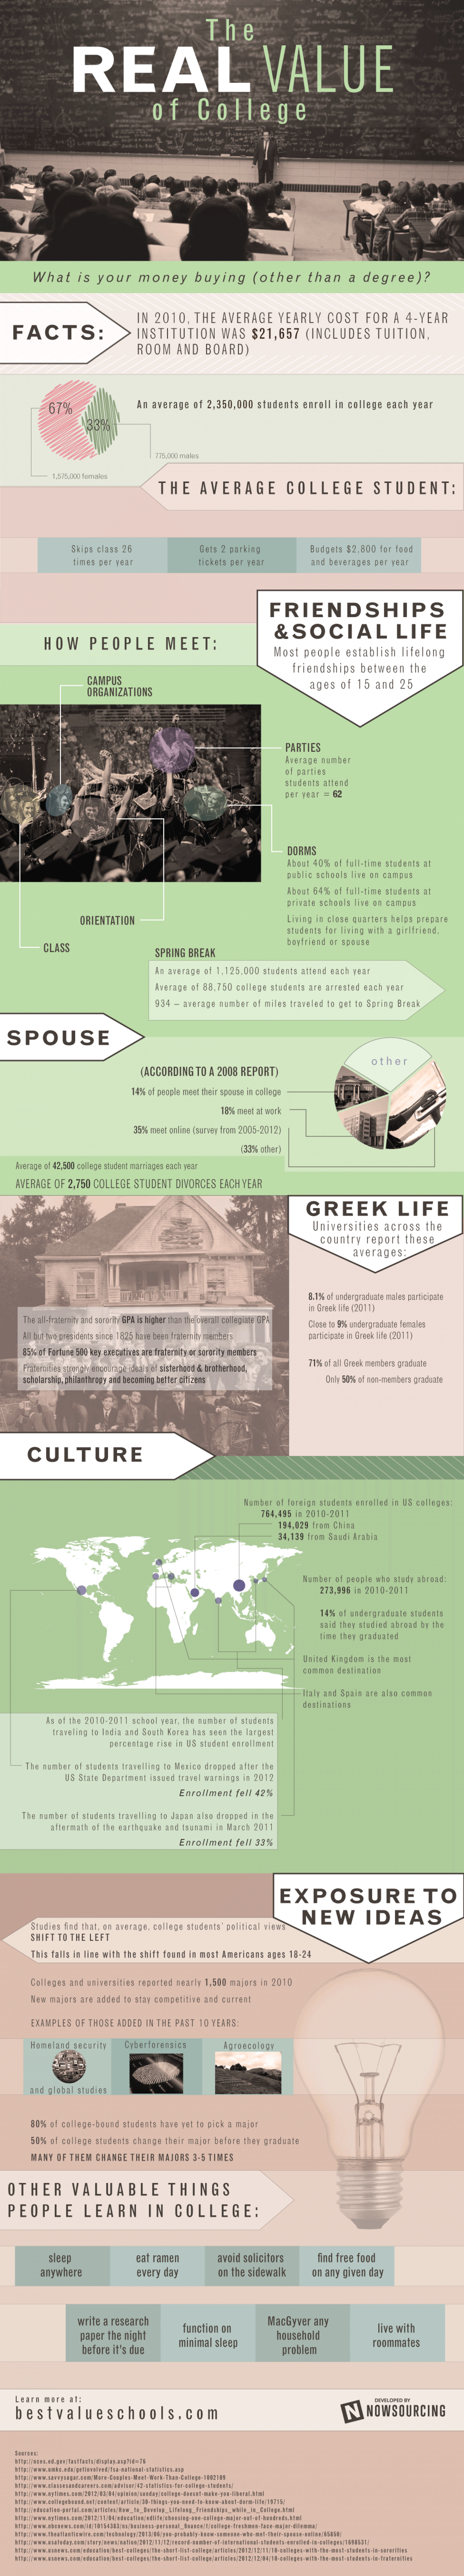 The Real Value of College Infographic